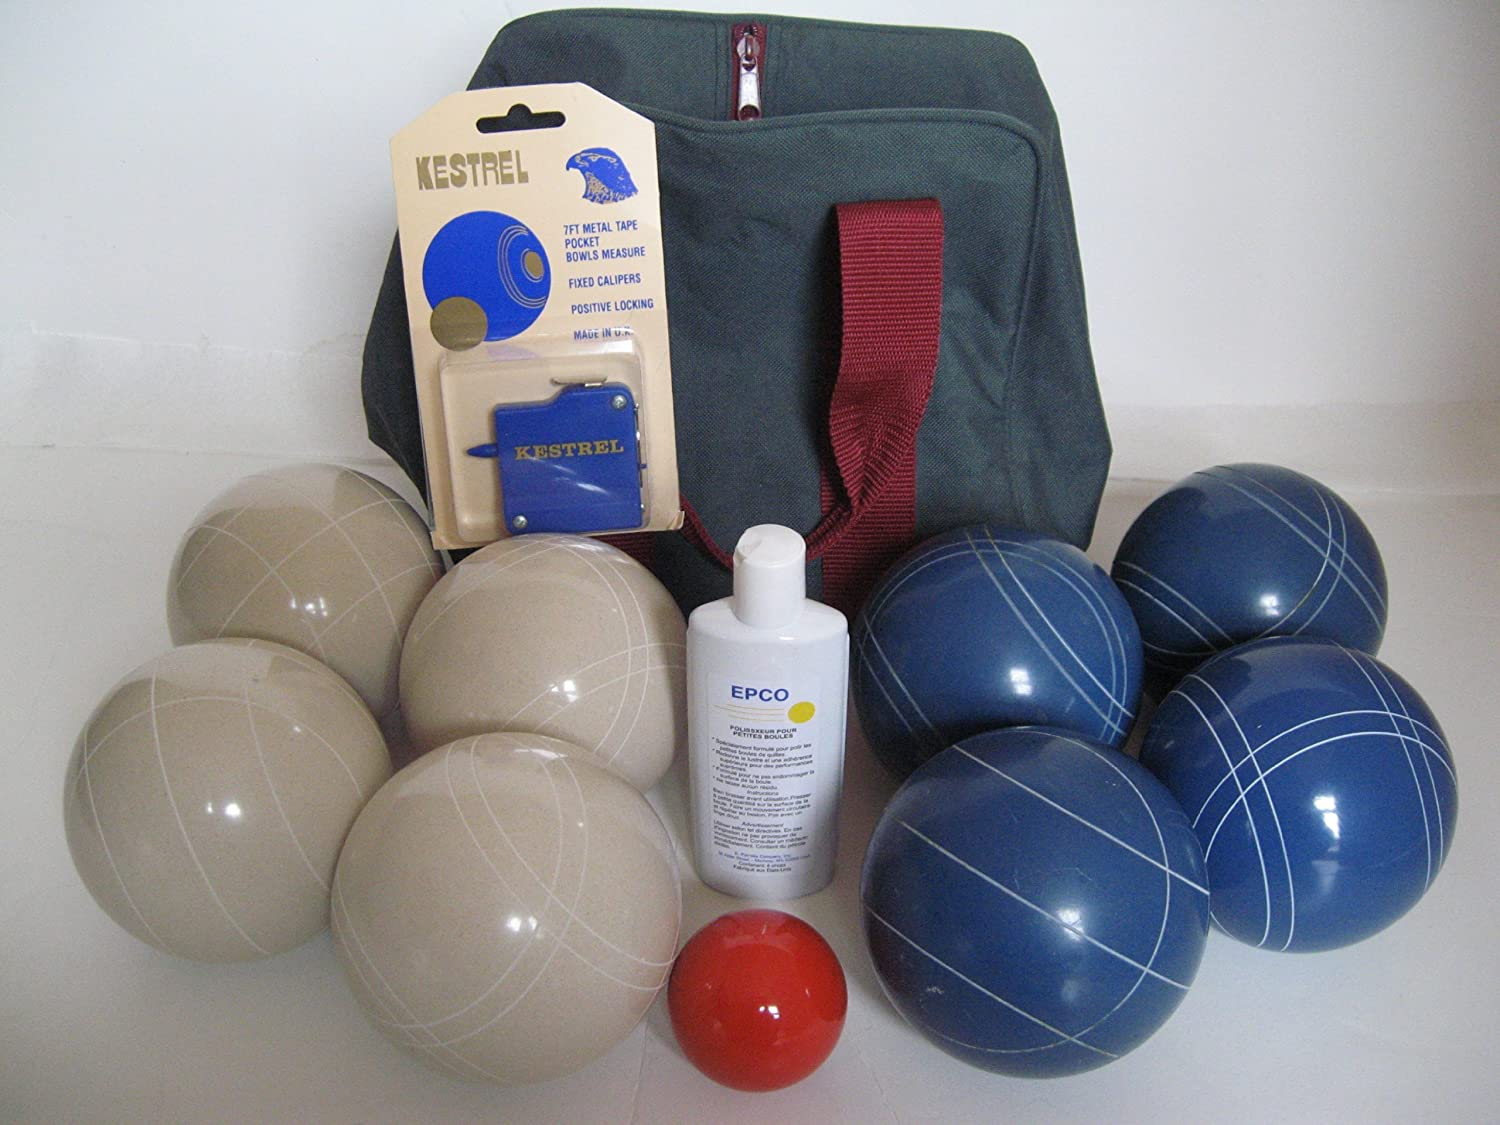 Premium Quality Basic EPCO Bocce package – 107mm White and Blue balls, qualit… bestellen